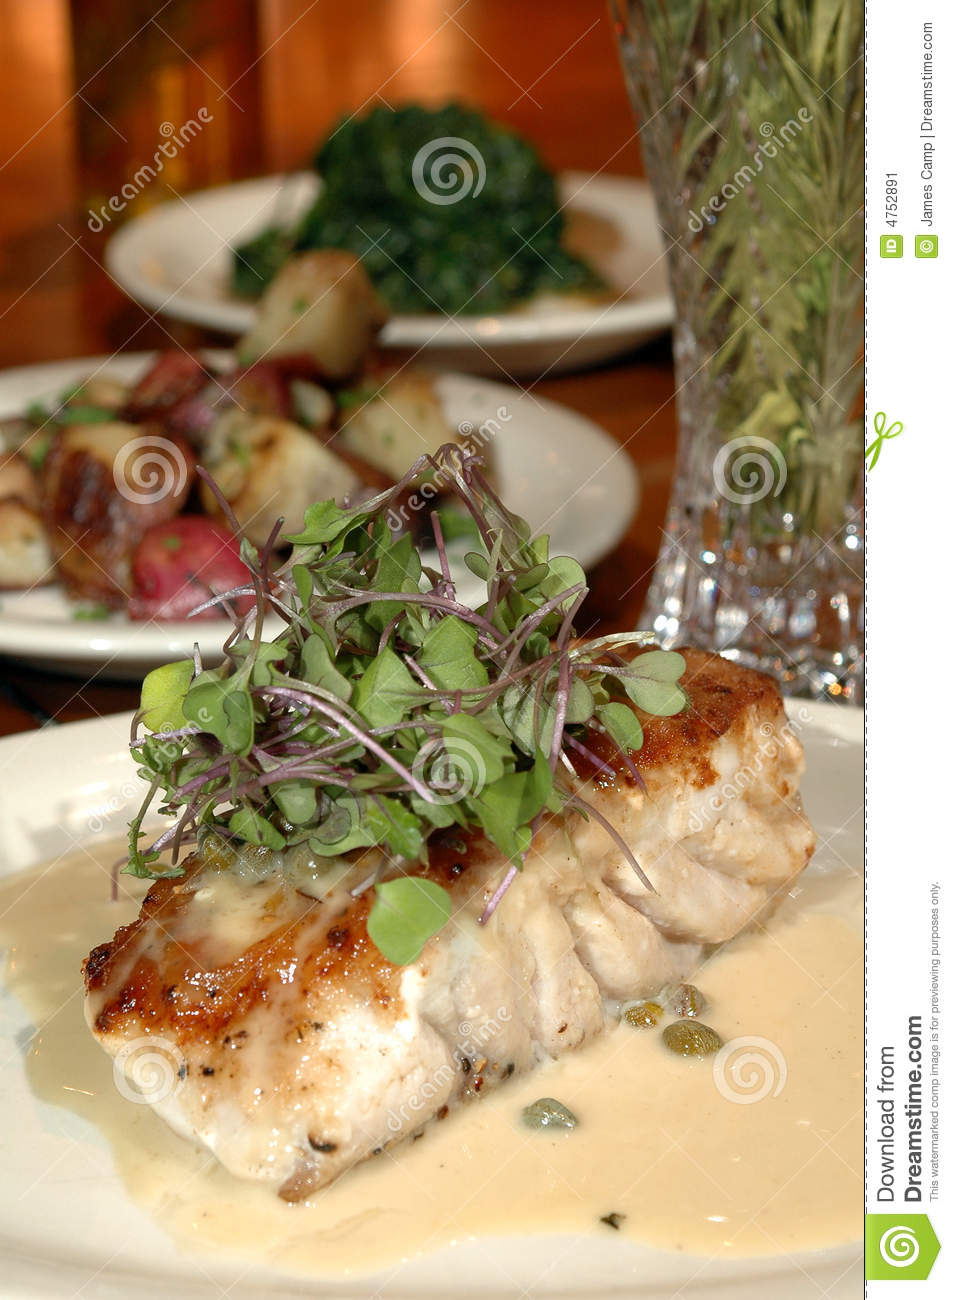 Baked fish and sides stock image image 4752891 for What sides go with fish